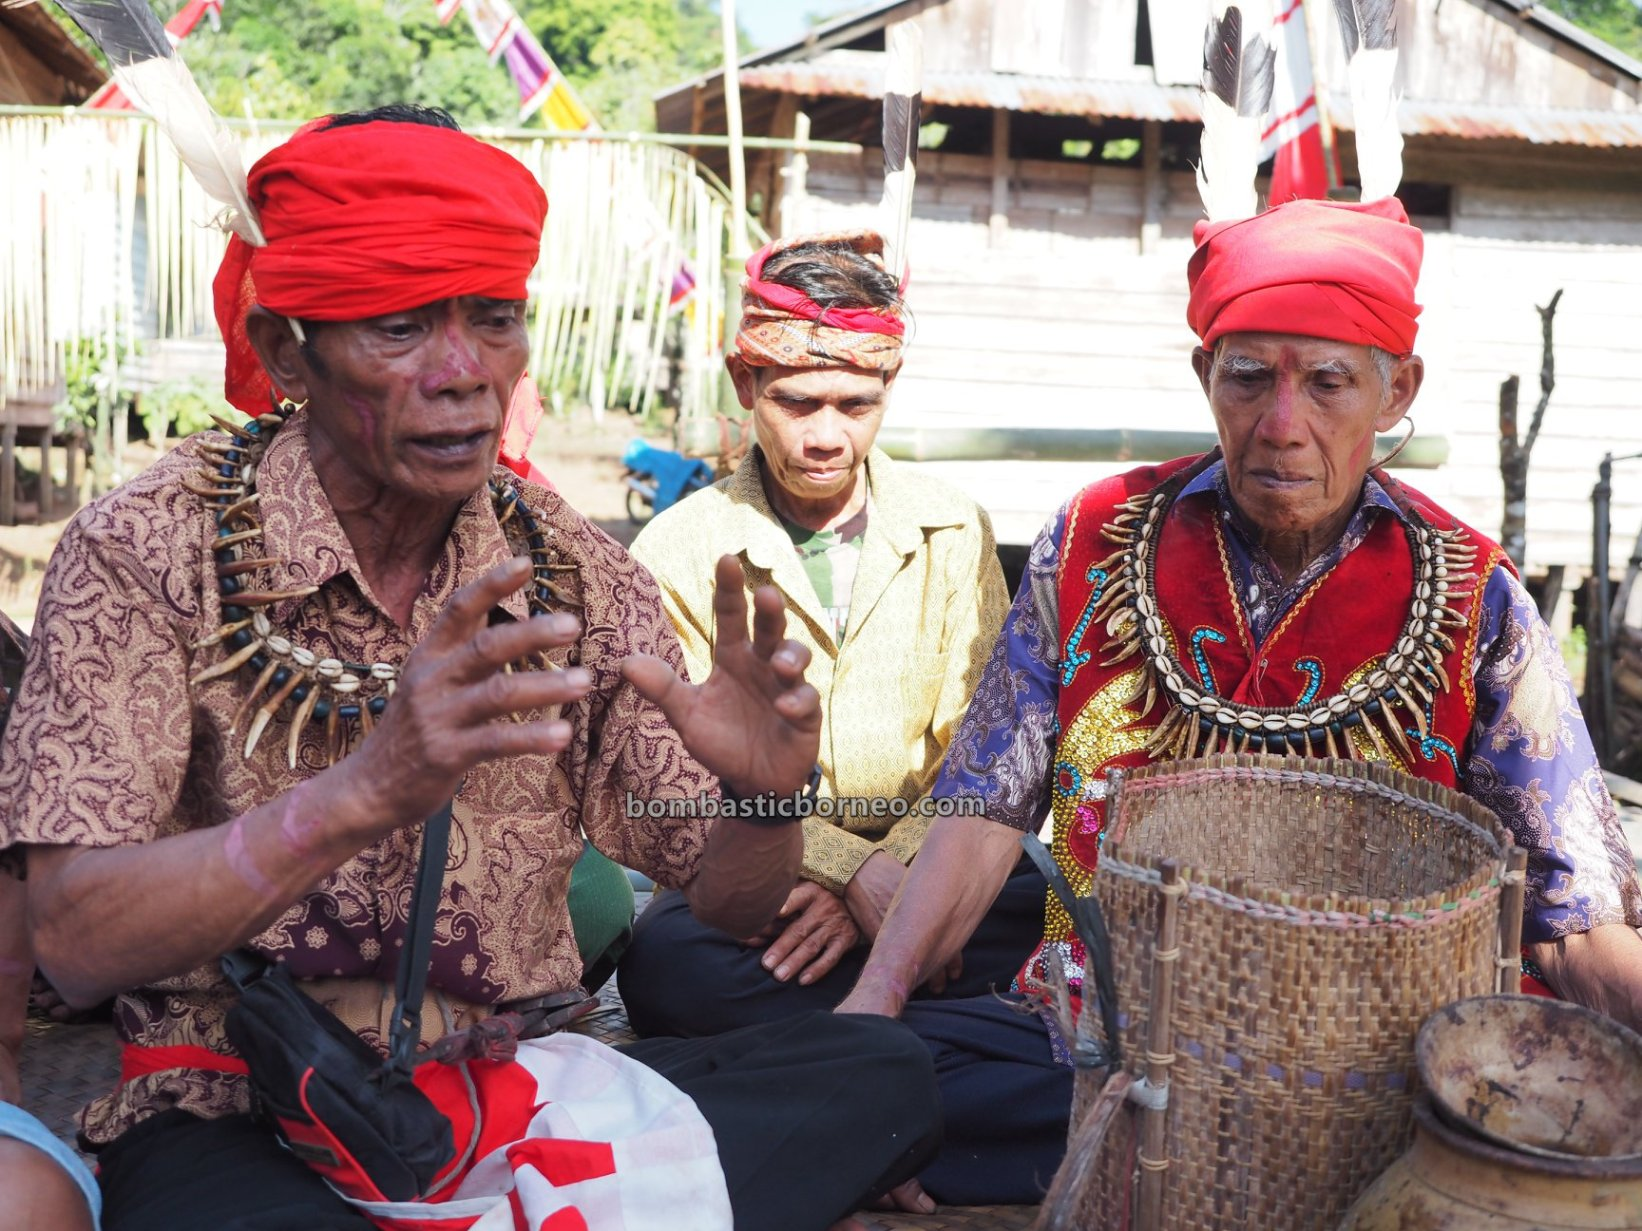 Gawai Nyobeng, Paddy Harvest Festival, budaya, event, Bengkayang, Desa Bengkawan, Seluas, Ethnic, indigenous, native, village, Tourism, Travel guide, 印尼西加里曼丹, 婆罗洲达雅丰收节, 原住民传统文化